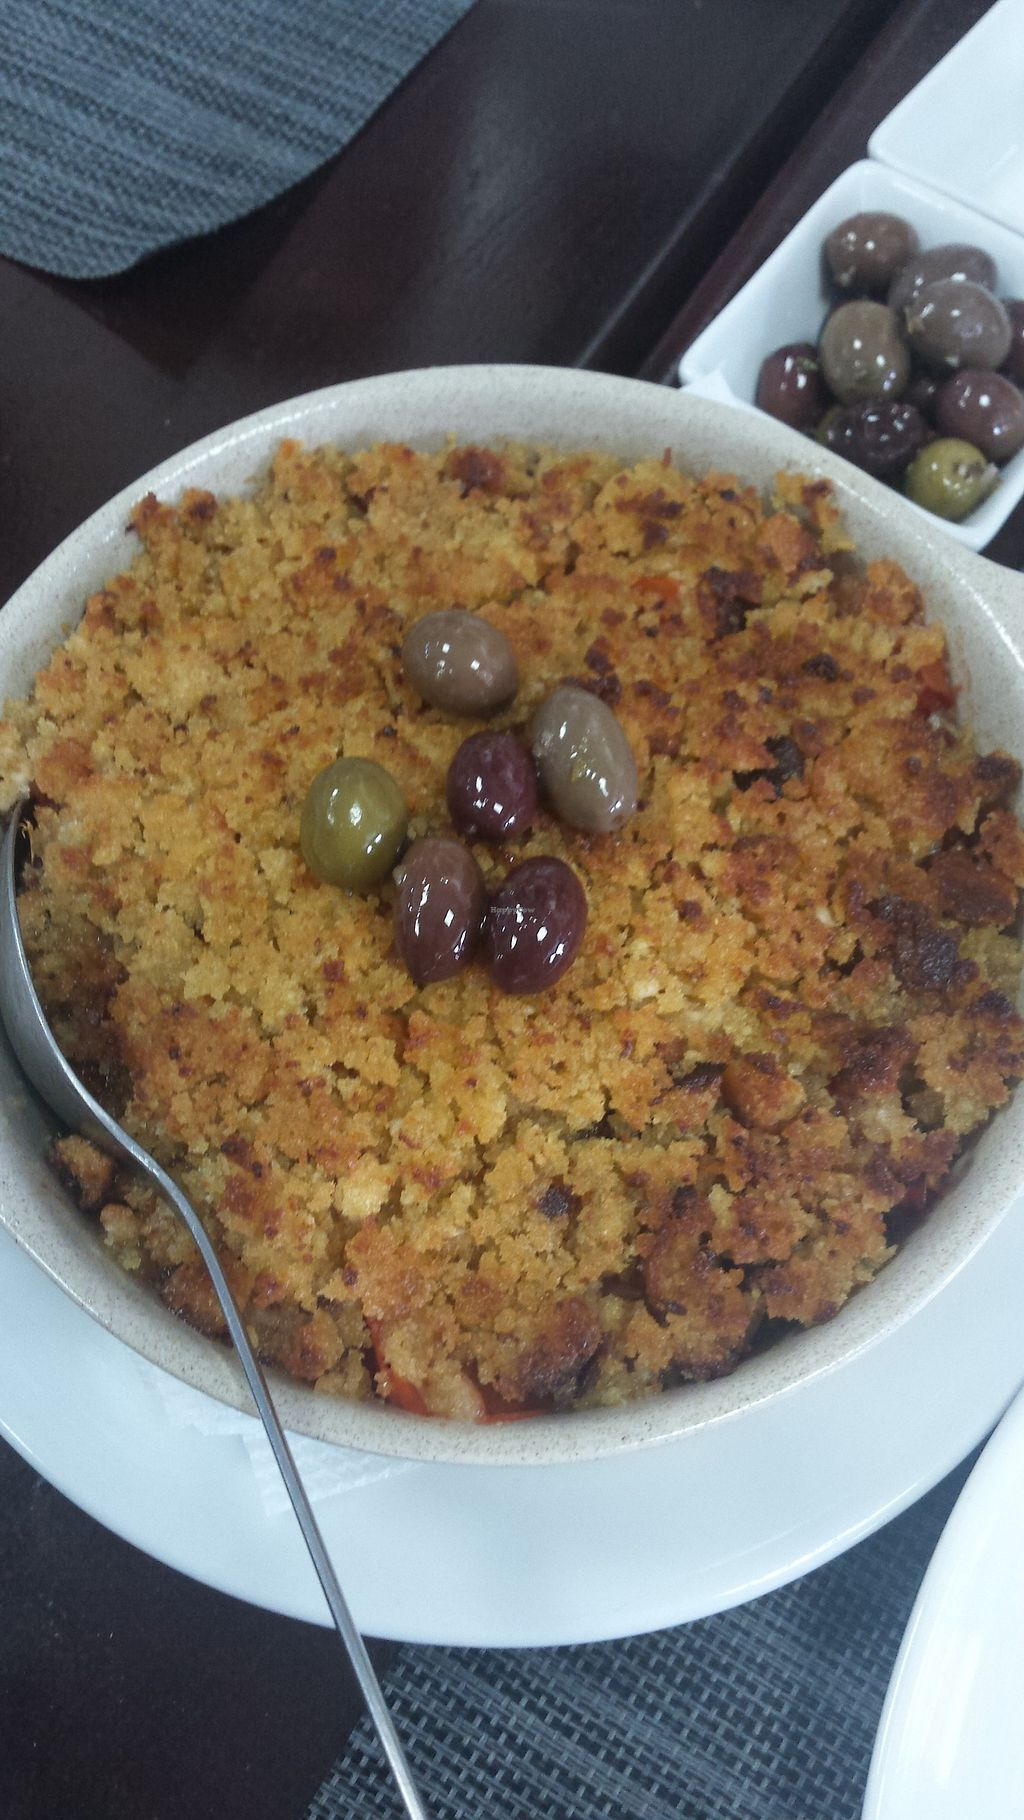 """Photo of Qualquer Hora  by <a href=""""/members/profile/inesvd"""">inesvd</a> <br/>Vegan crumble.  <br/> September 4, 2017  - <a href='/contact/abuse/image/100214/300812'>Report</a>"""